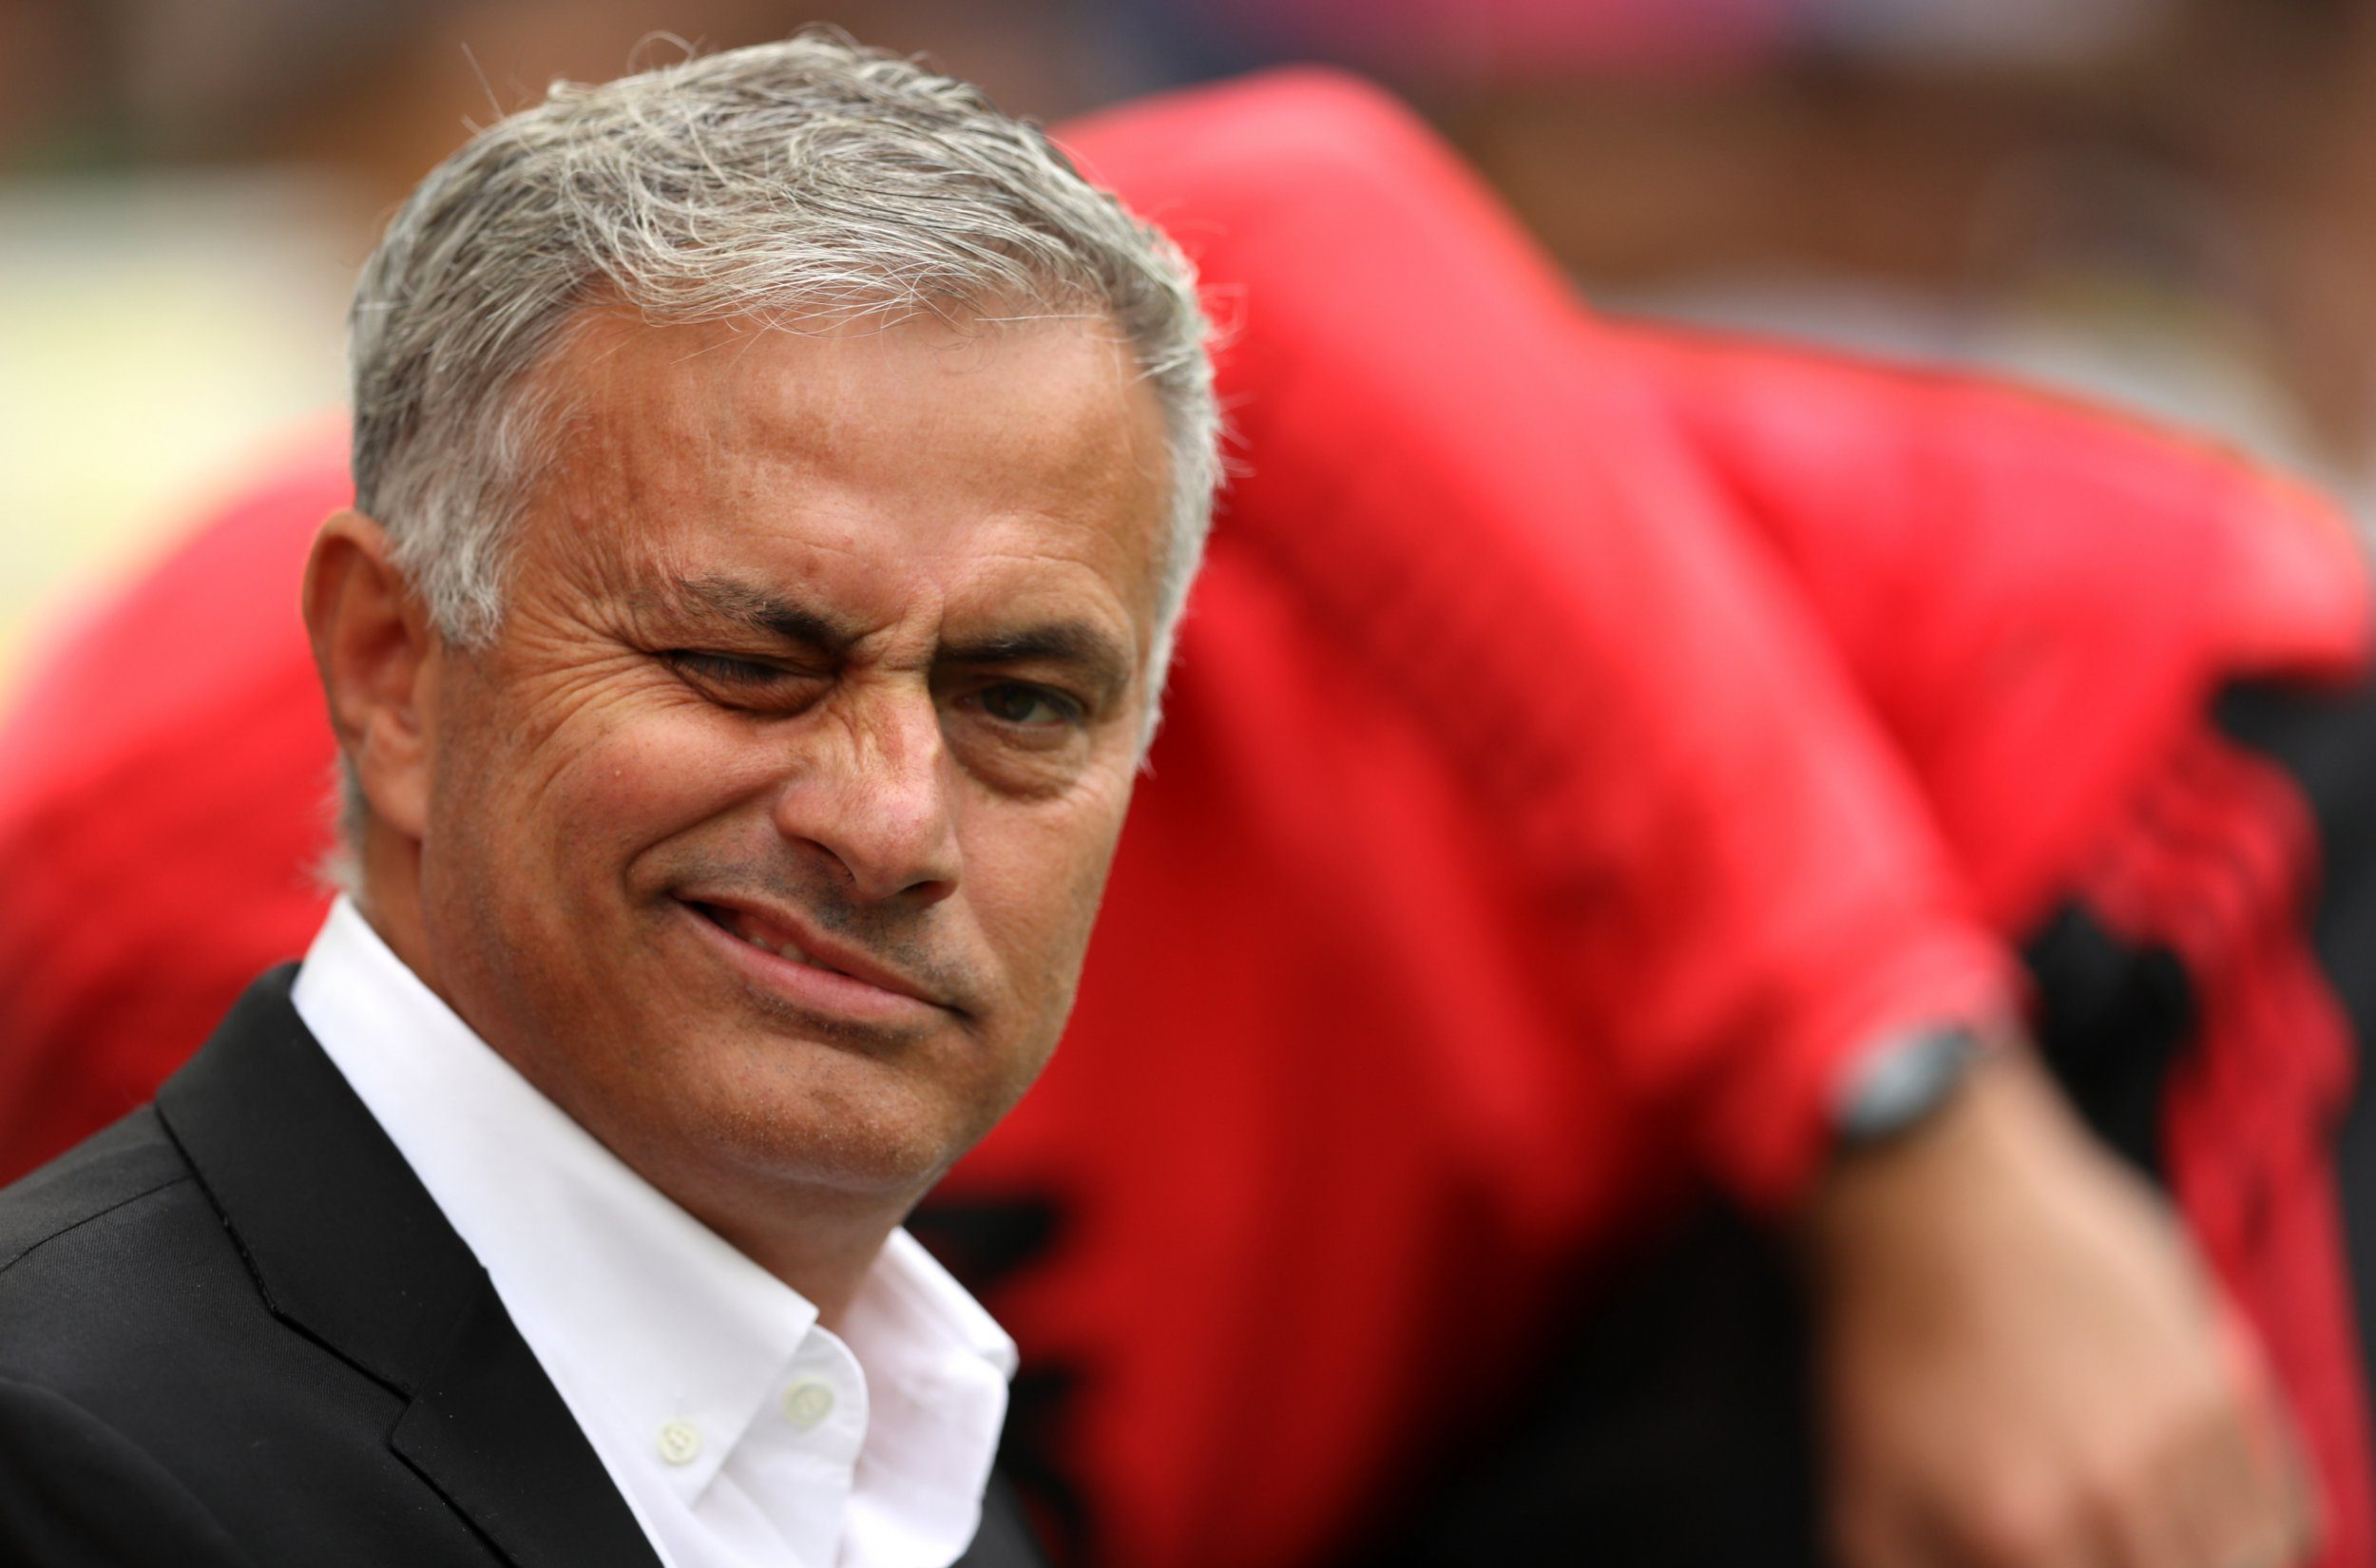 BRIGHTON, ENGLAND - AUGUST 19: Jose Mourinho, Manager of Manchester United looks on during the Premier League match between Brighton & Hove Albion and Manchester United at American Express Community Stadium on August 19, 2018 in Brighton, United Kingdom. (Photo by Dan Istitene/Getty Images)